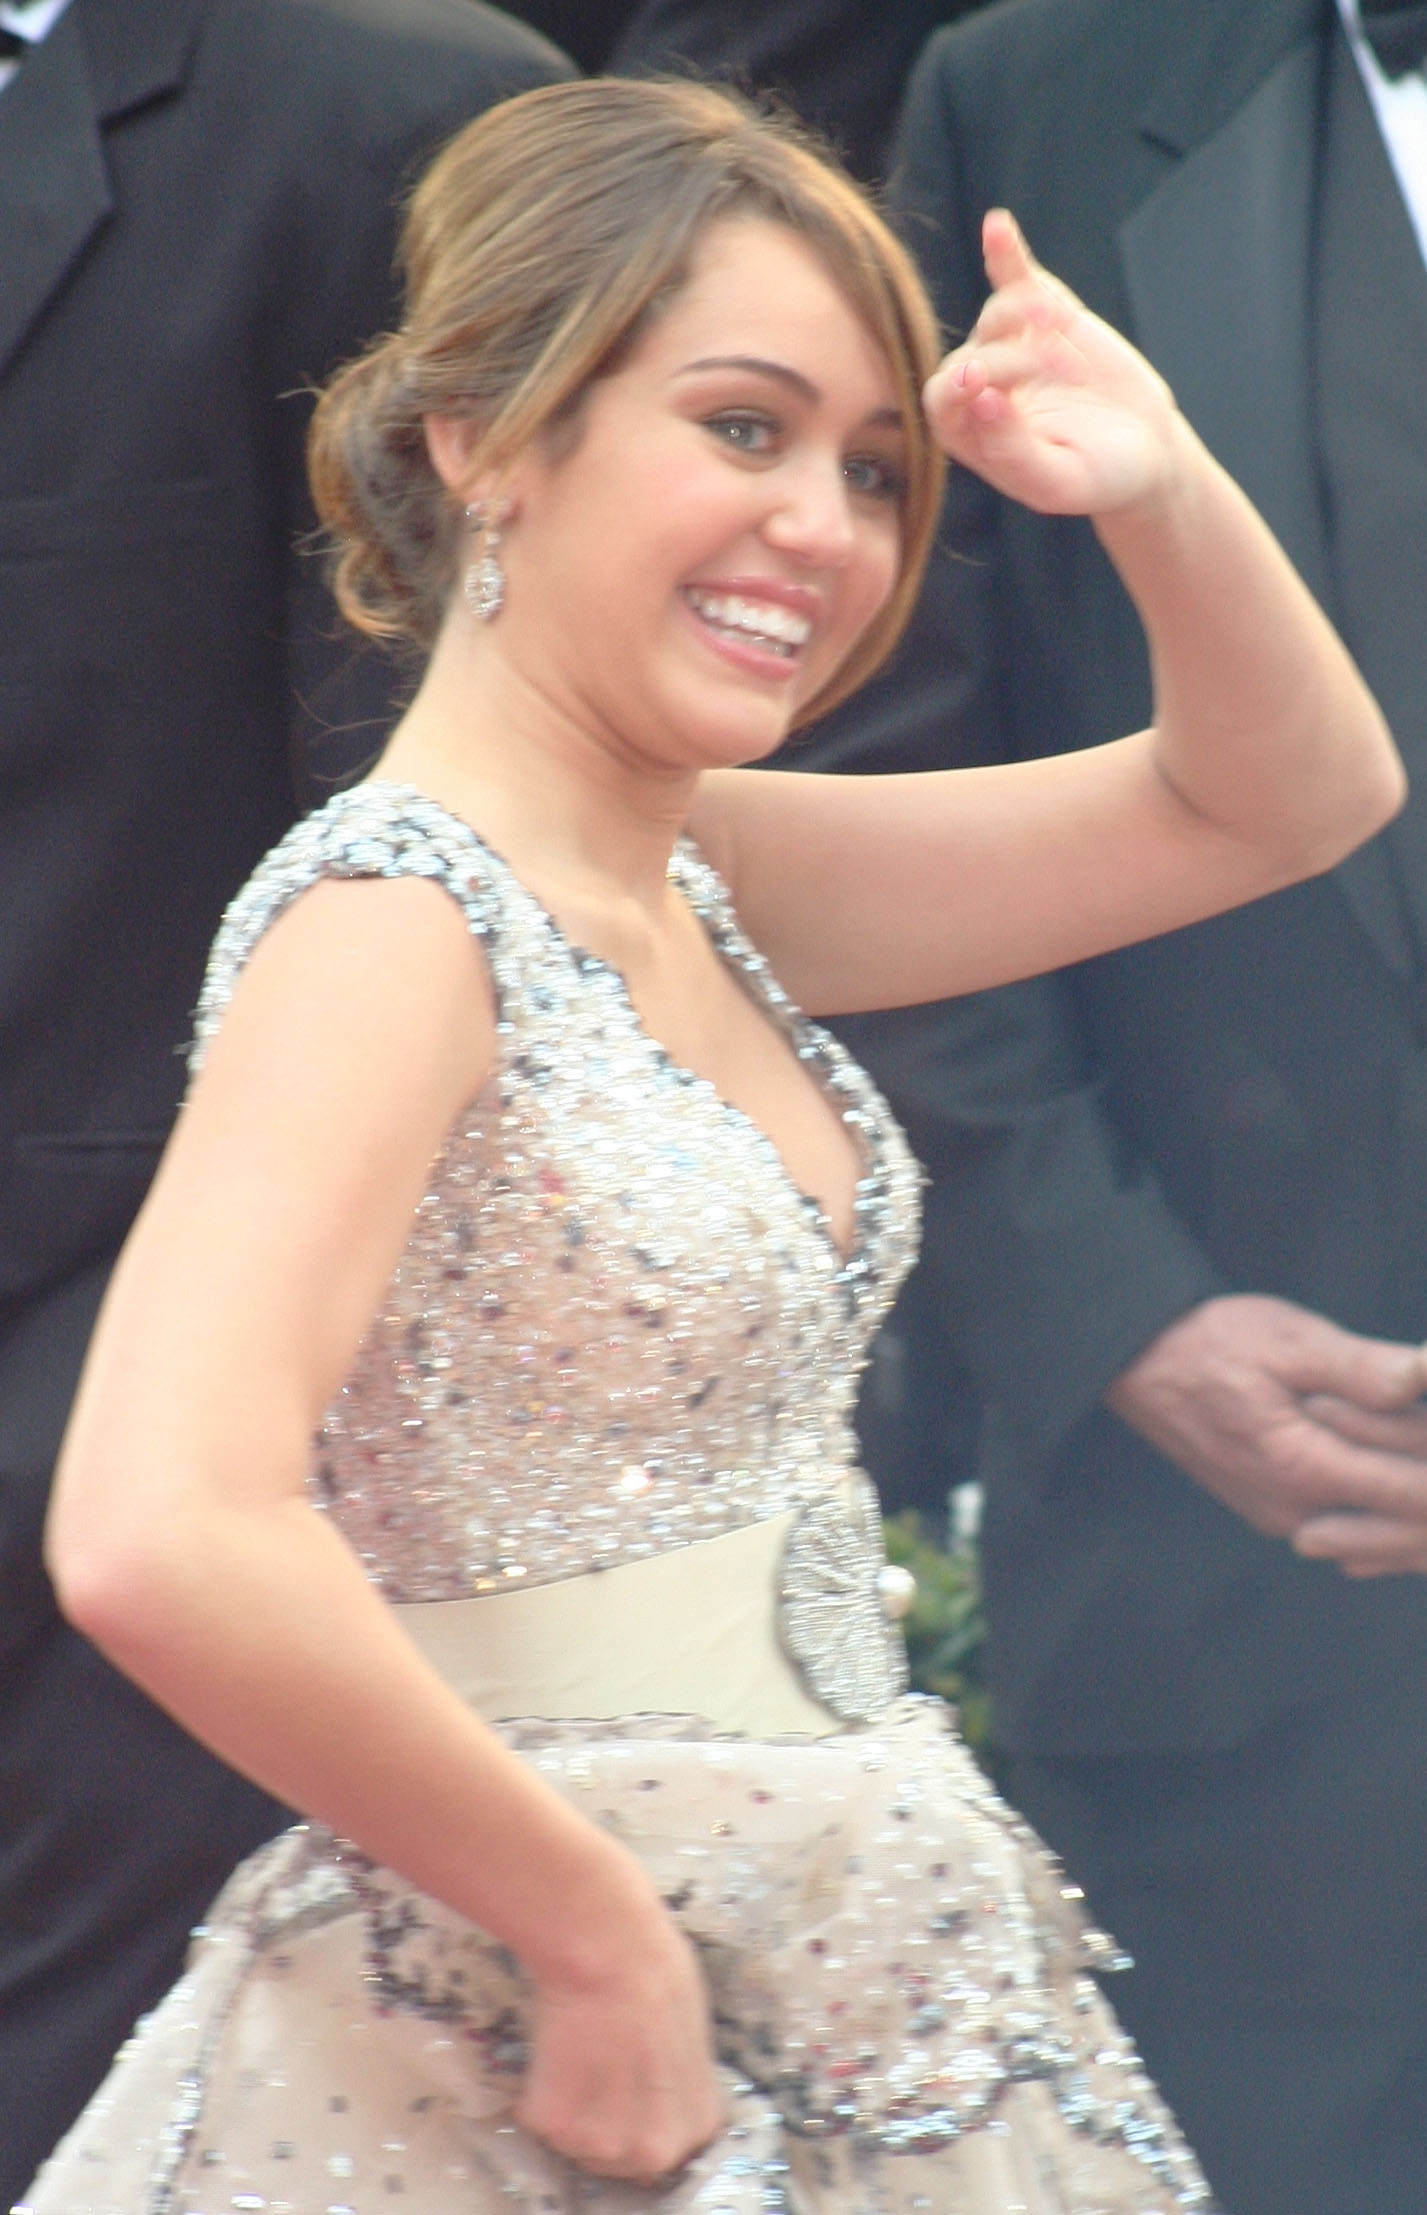 Miley_Cyrus_at_the_2009_Academy_Awards_04.jpg